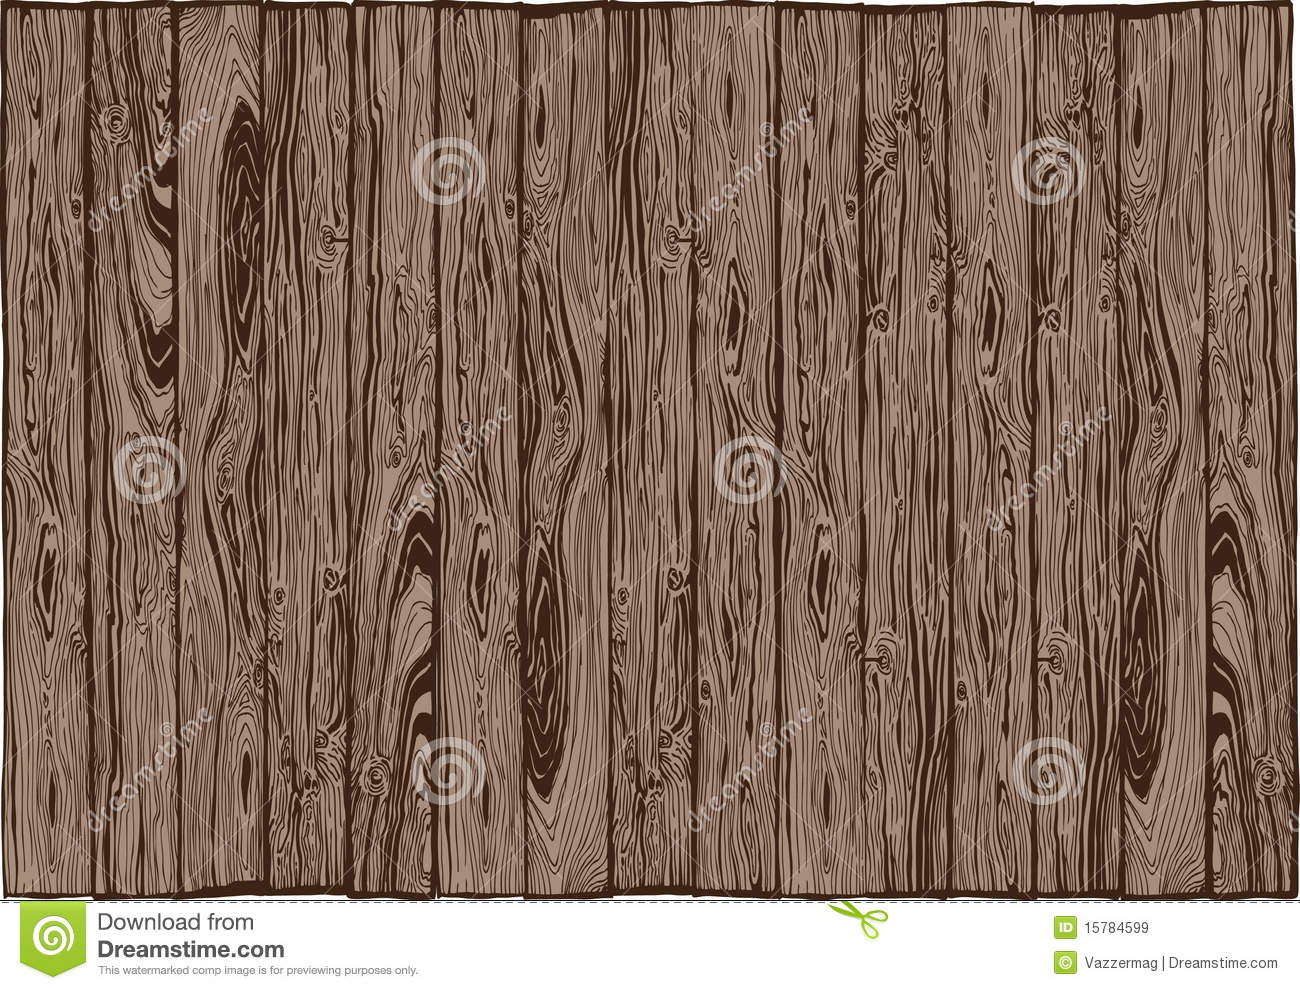 Wood Plank Drawing ~ Wood plank alignment stock vector illustration of strokes